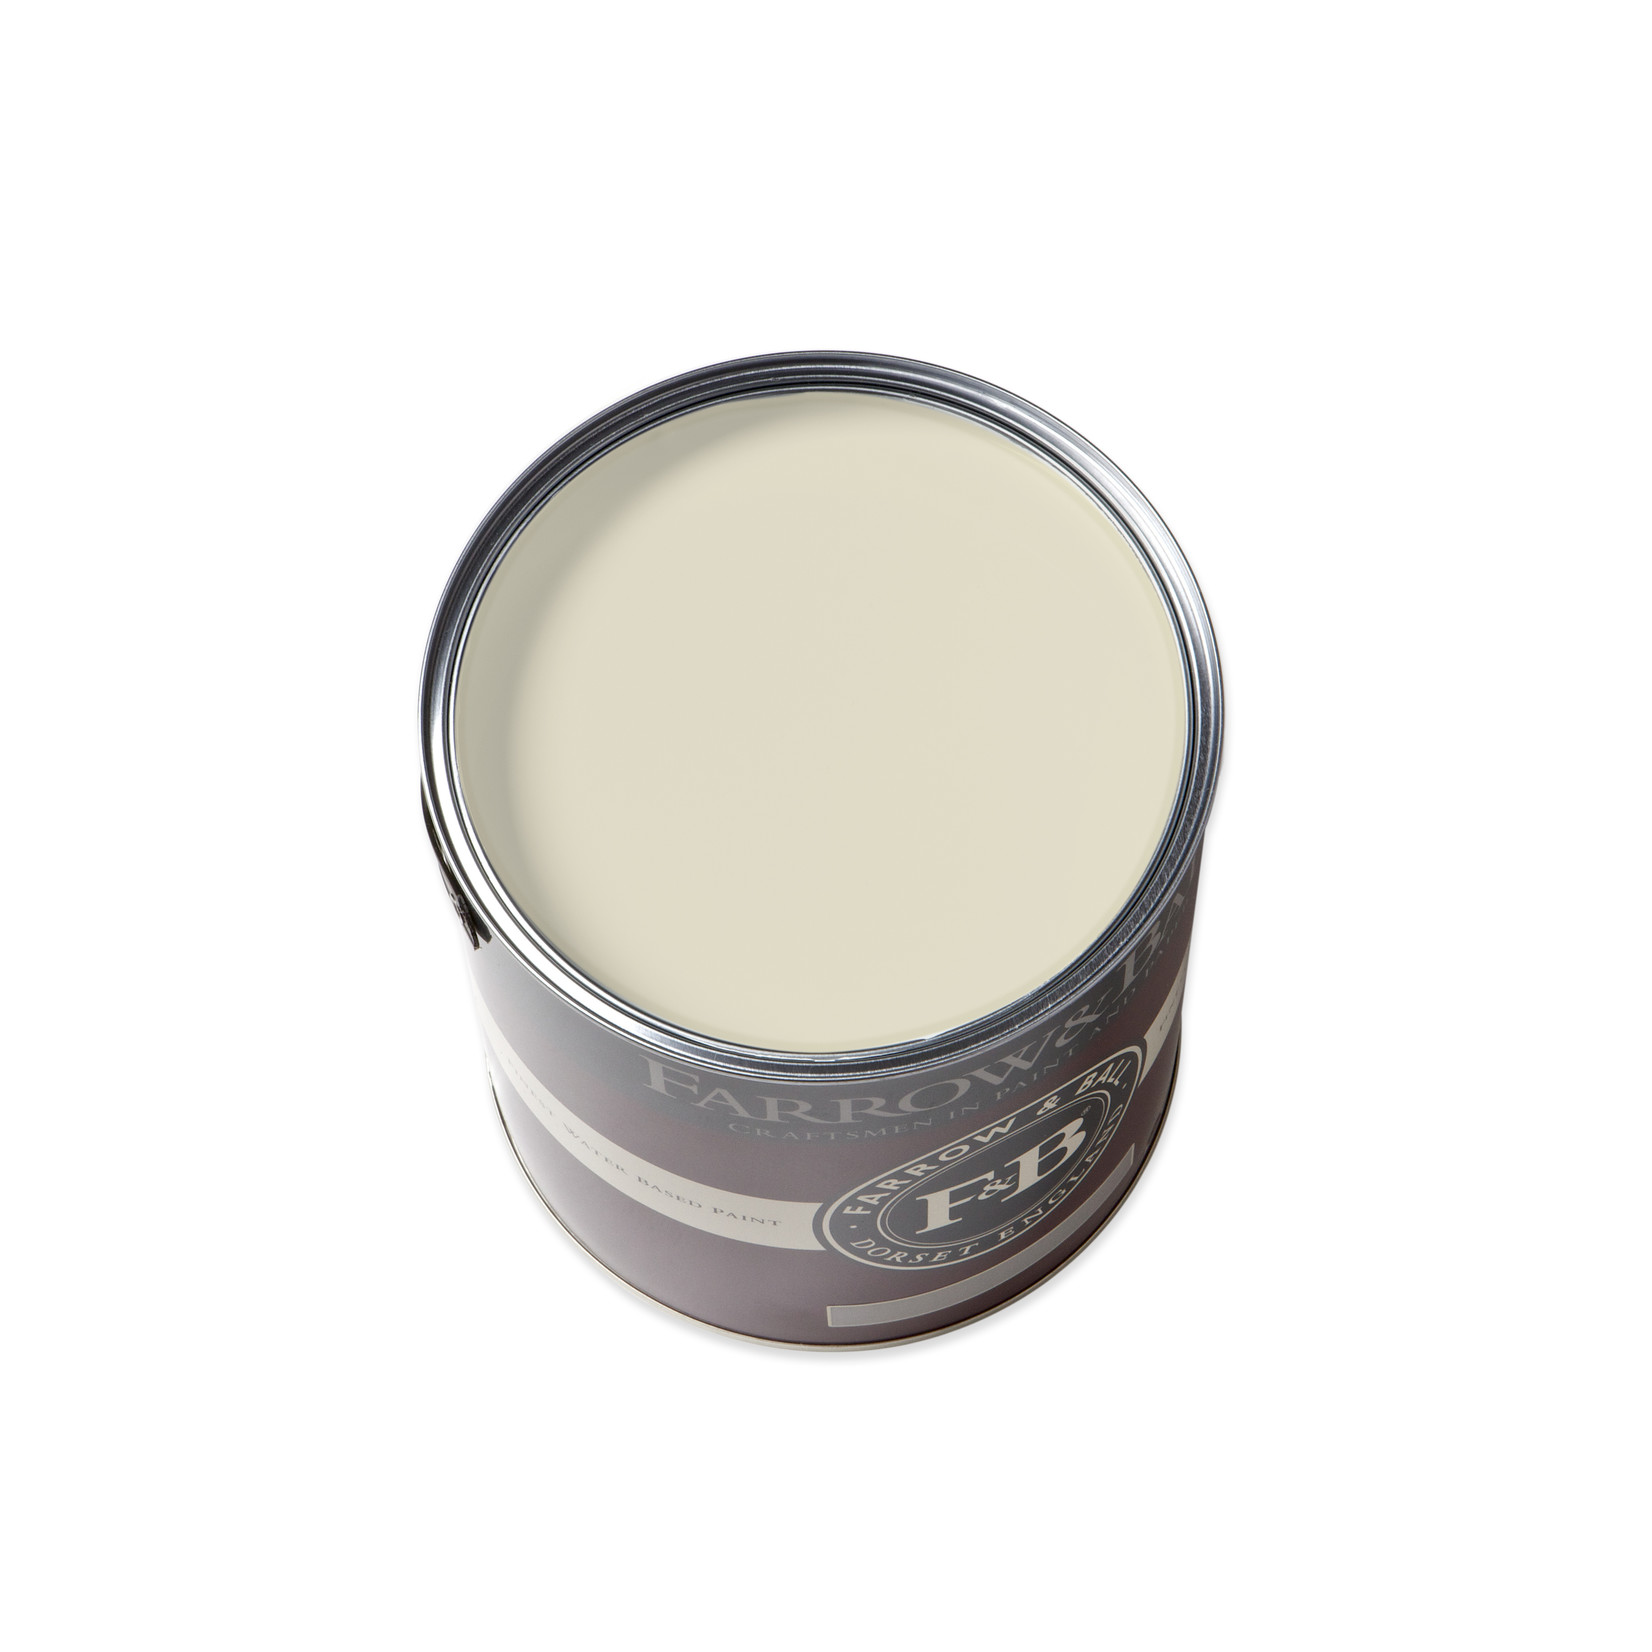 FARROW & BALL LIME WHITE - No. 1